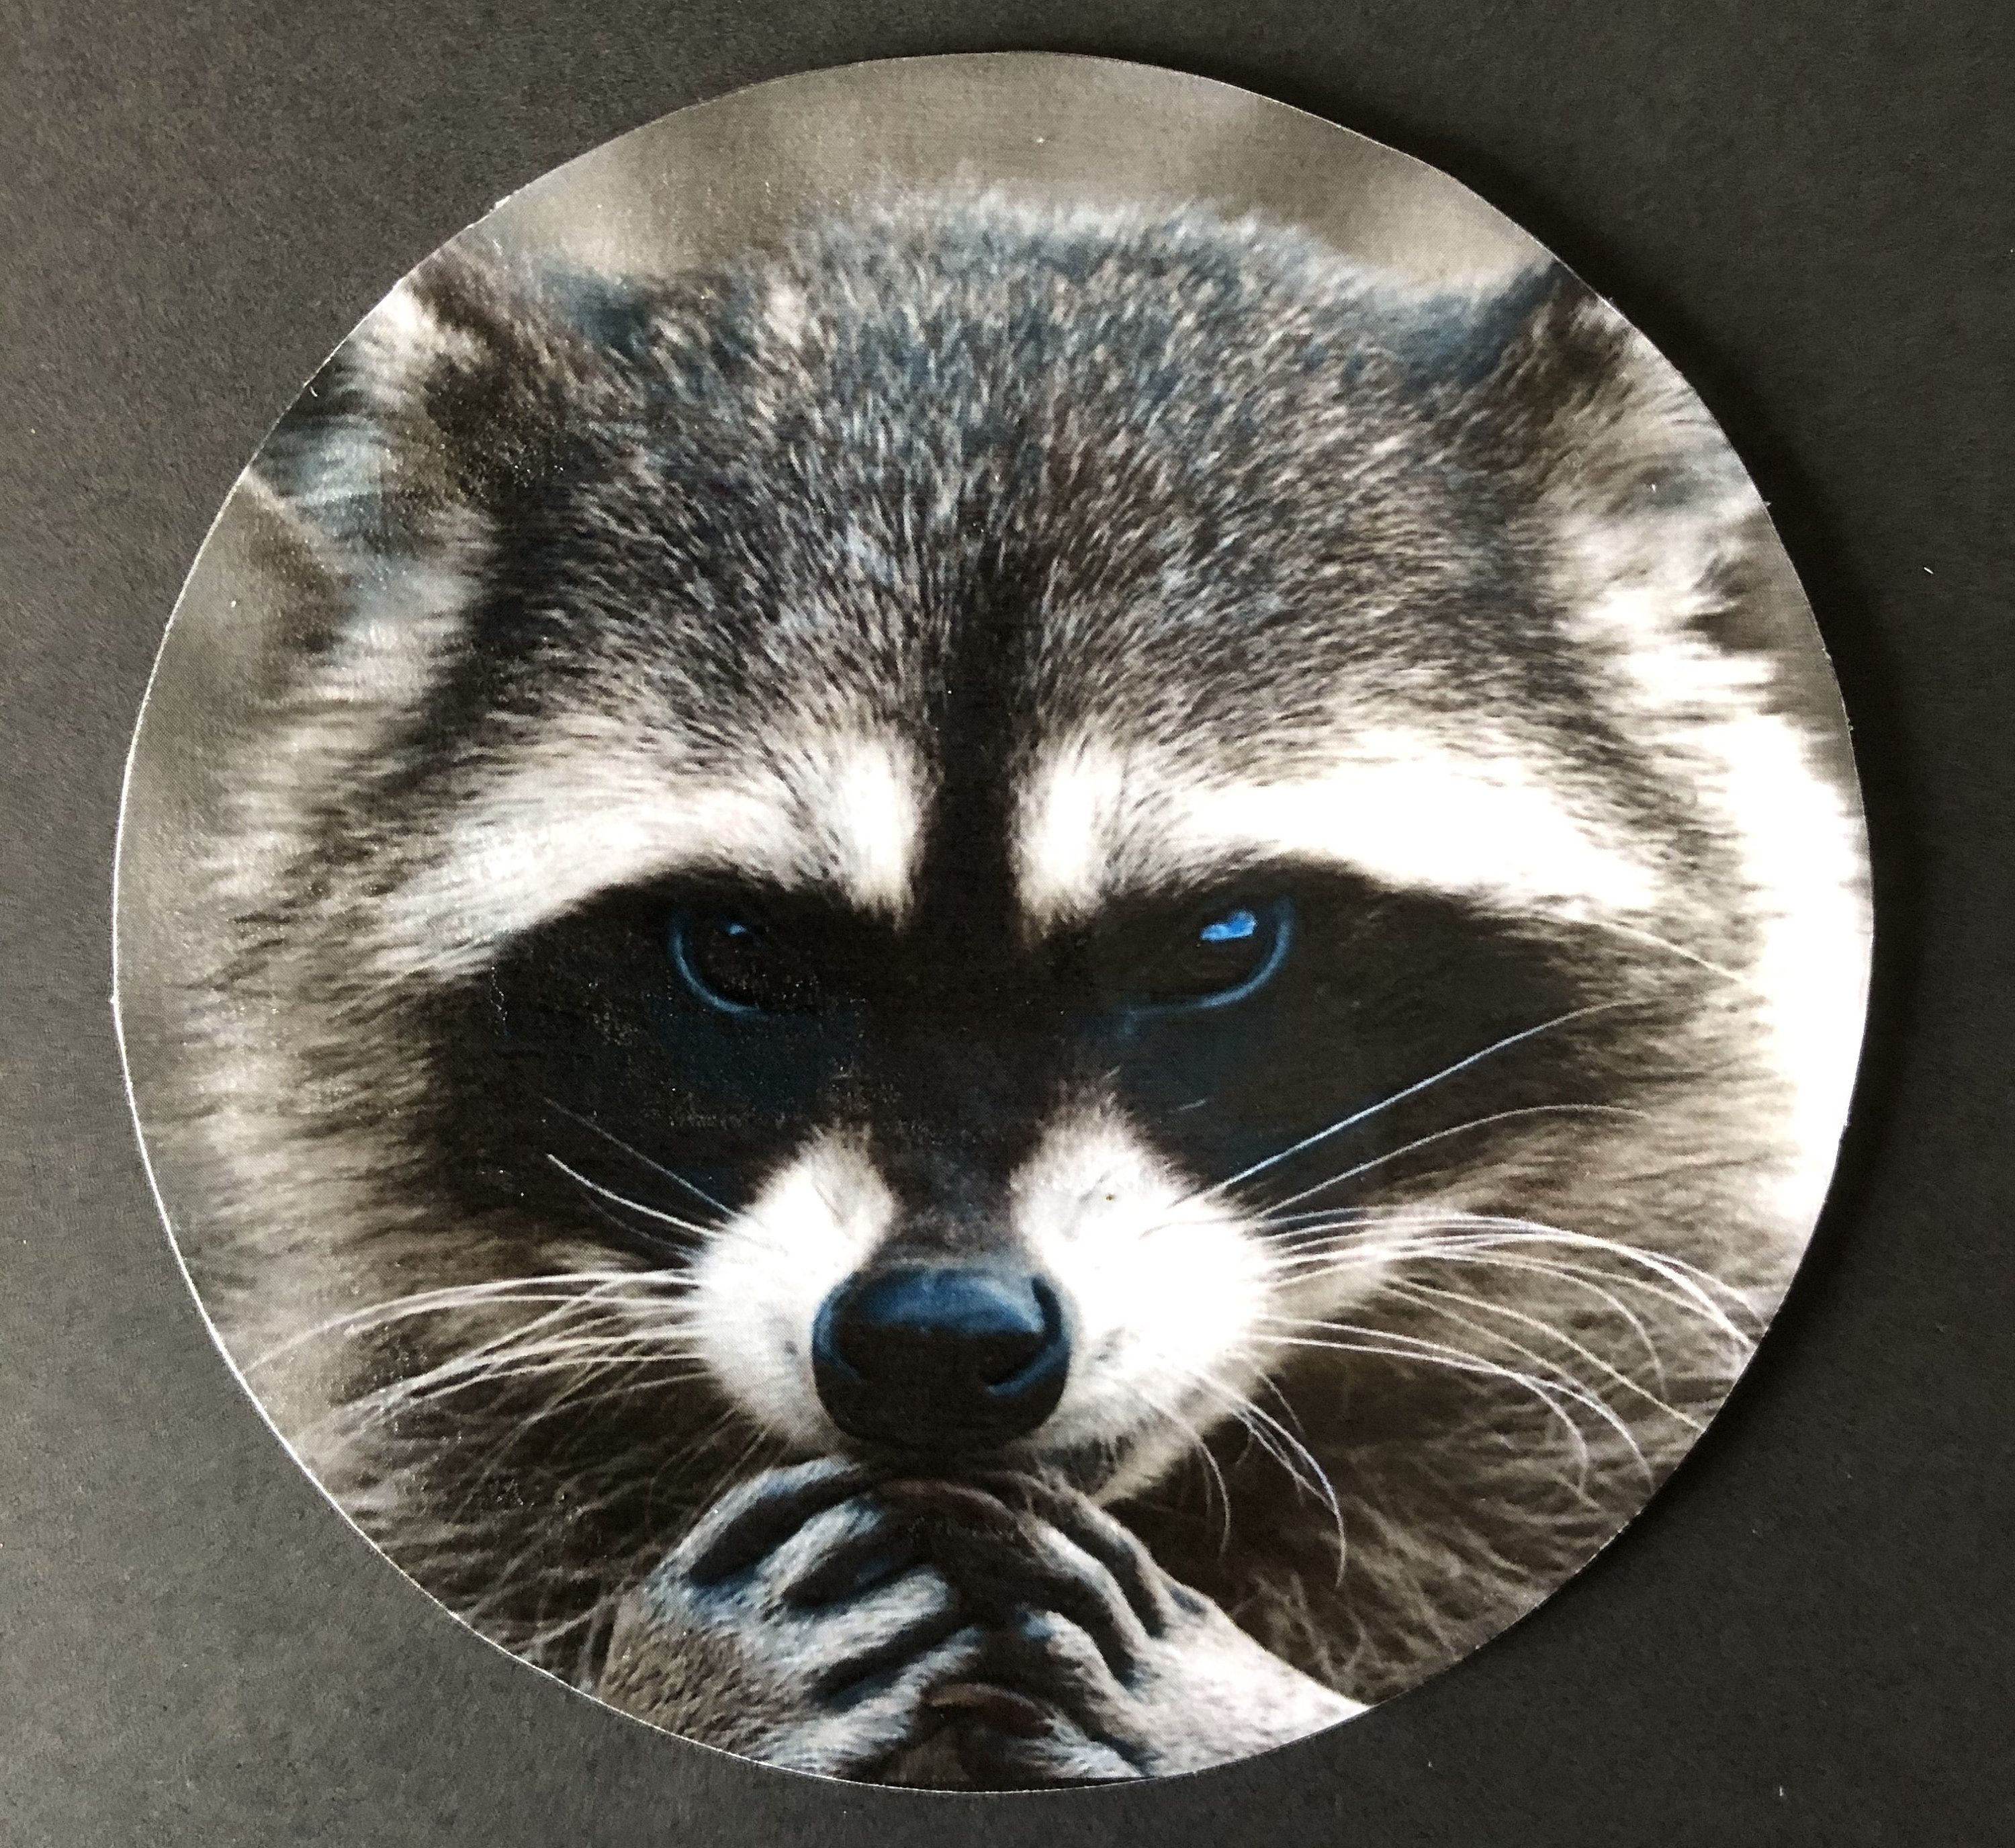 Raccoon - Recycled CD Art - Home Decor #recycledcd